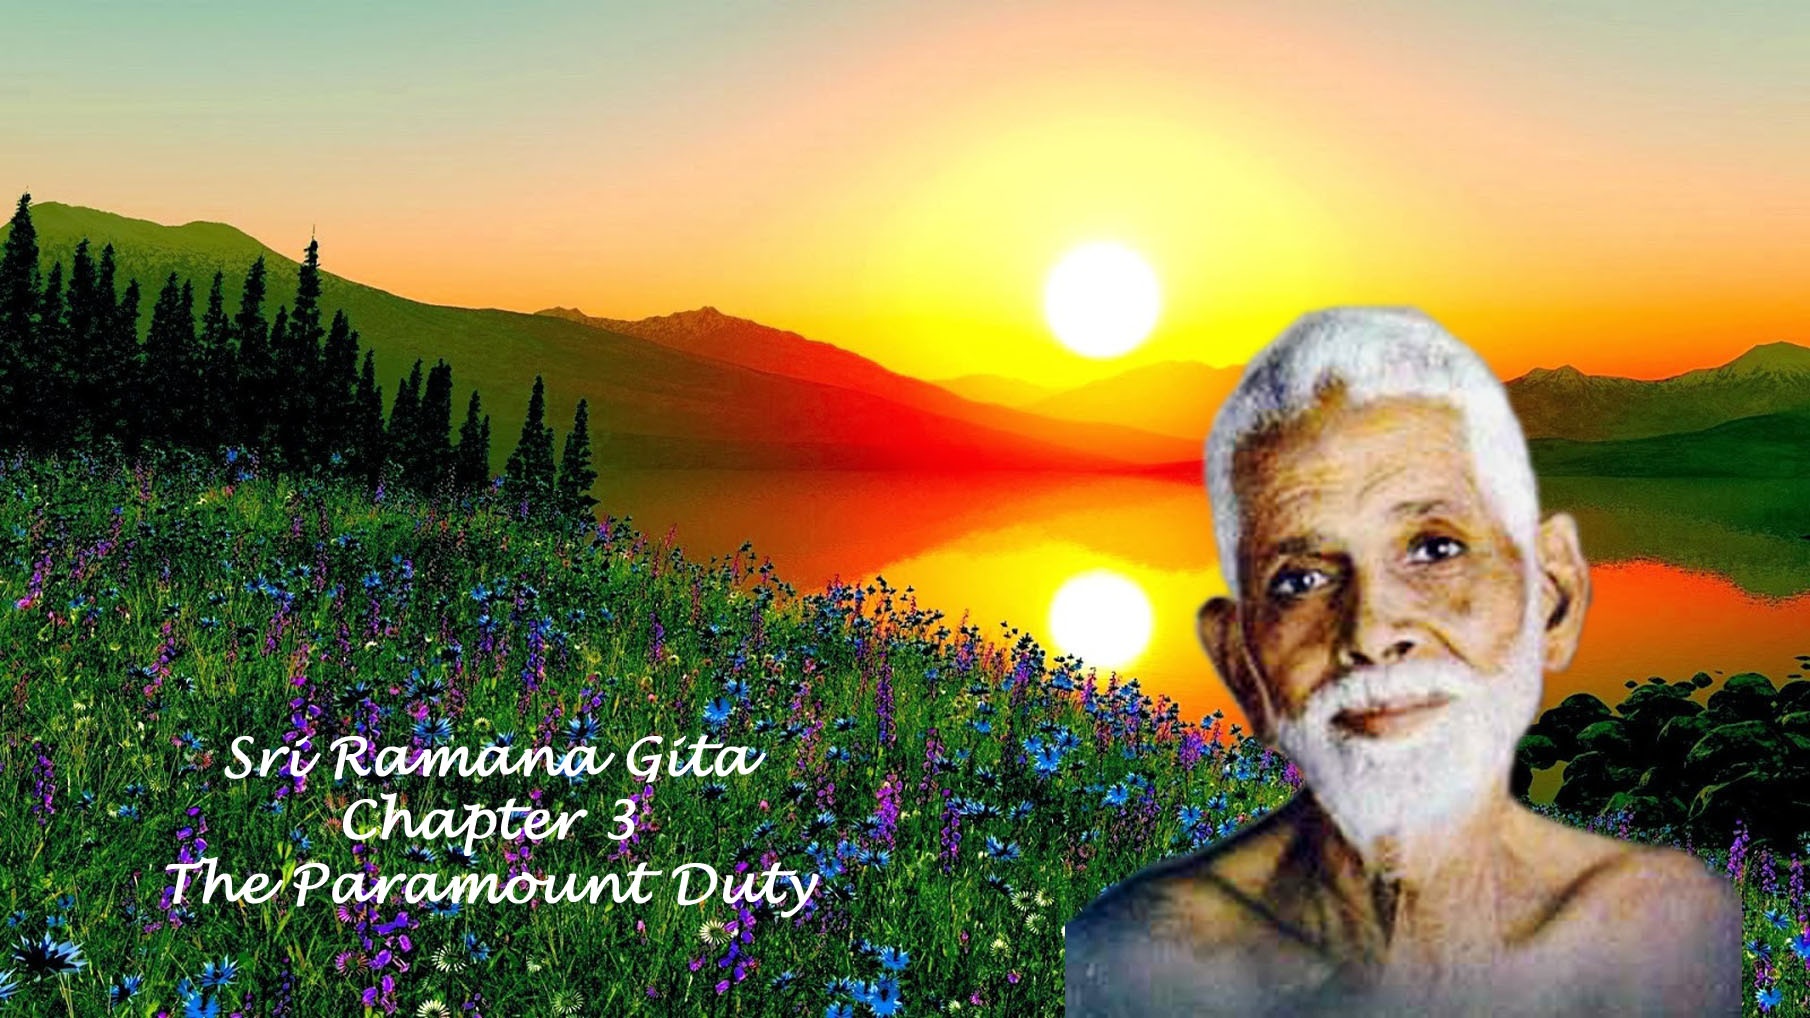 Ramana Gita - Chapter 3 - The Paramount Duty